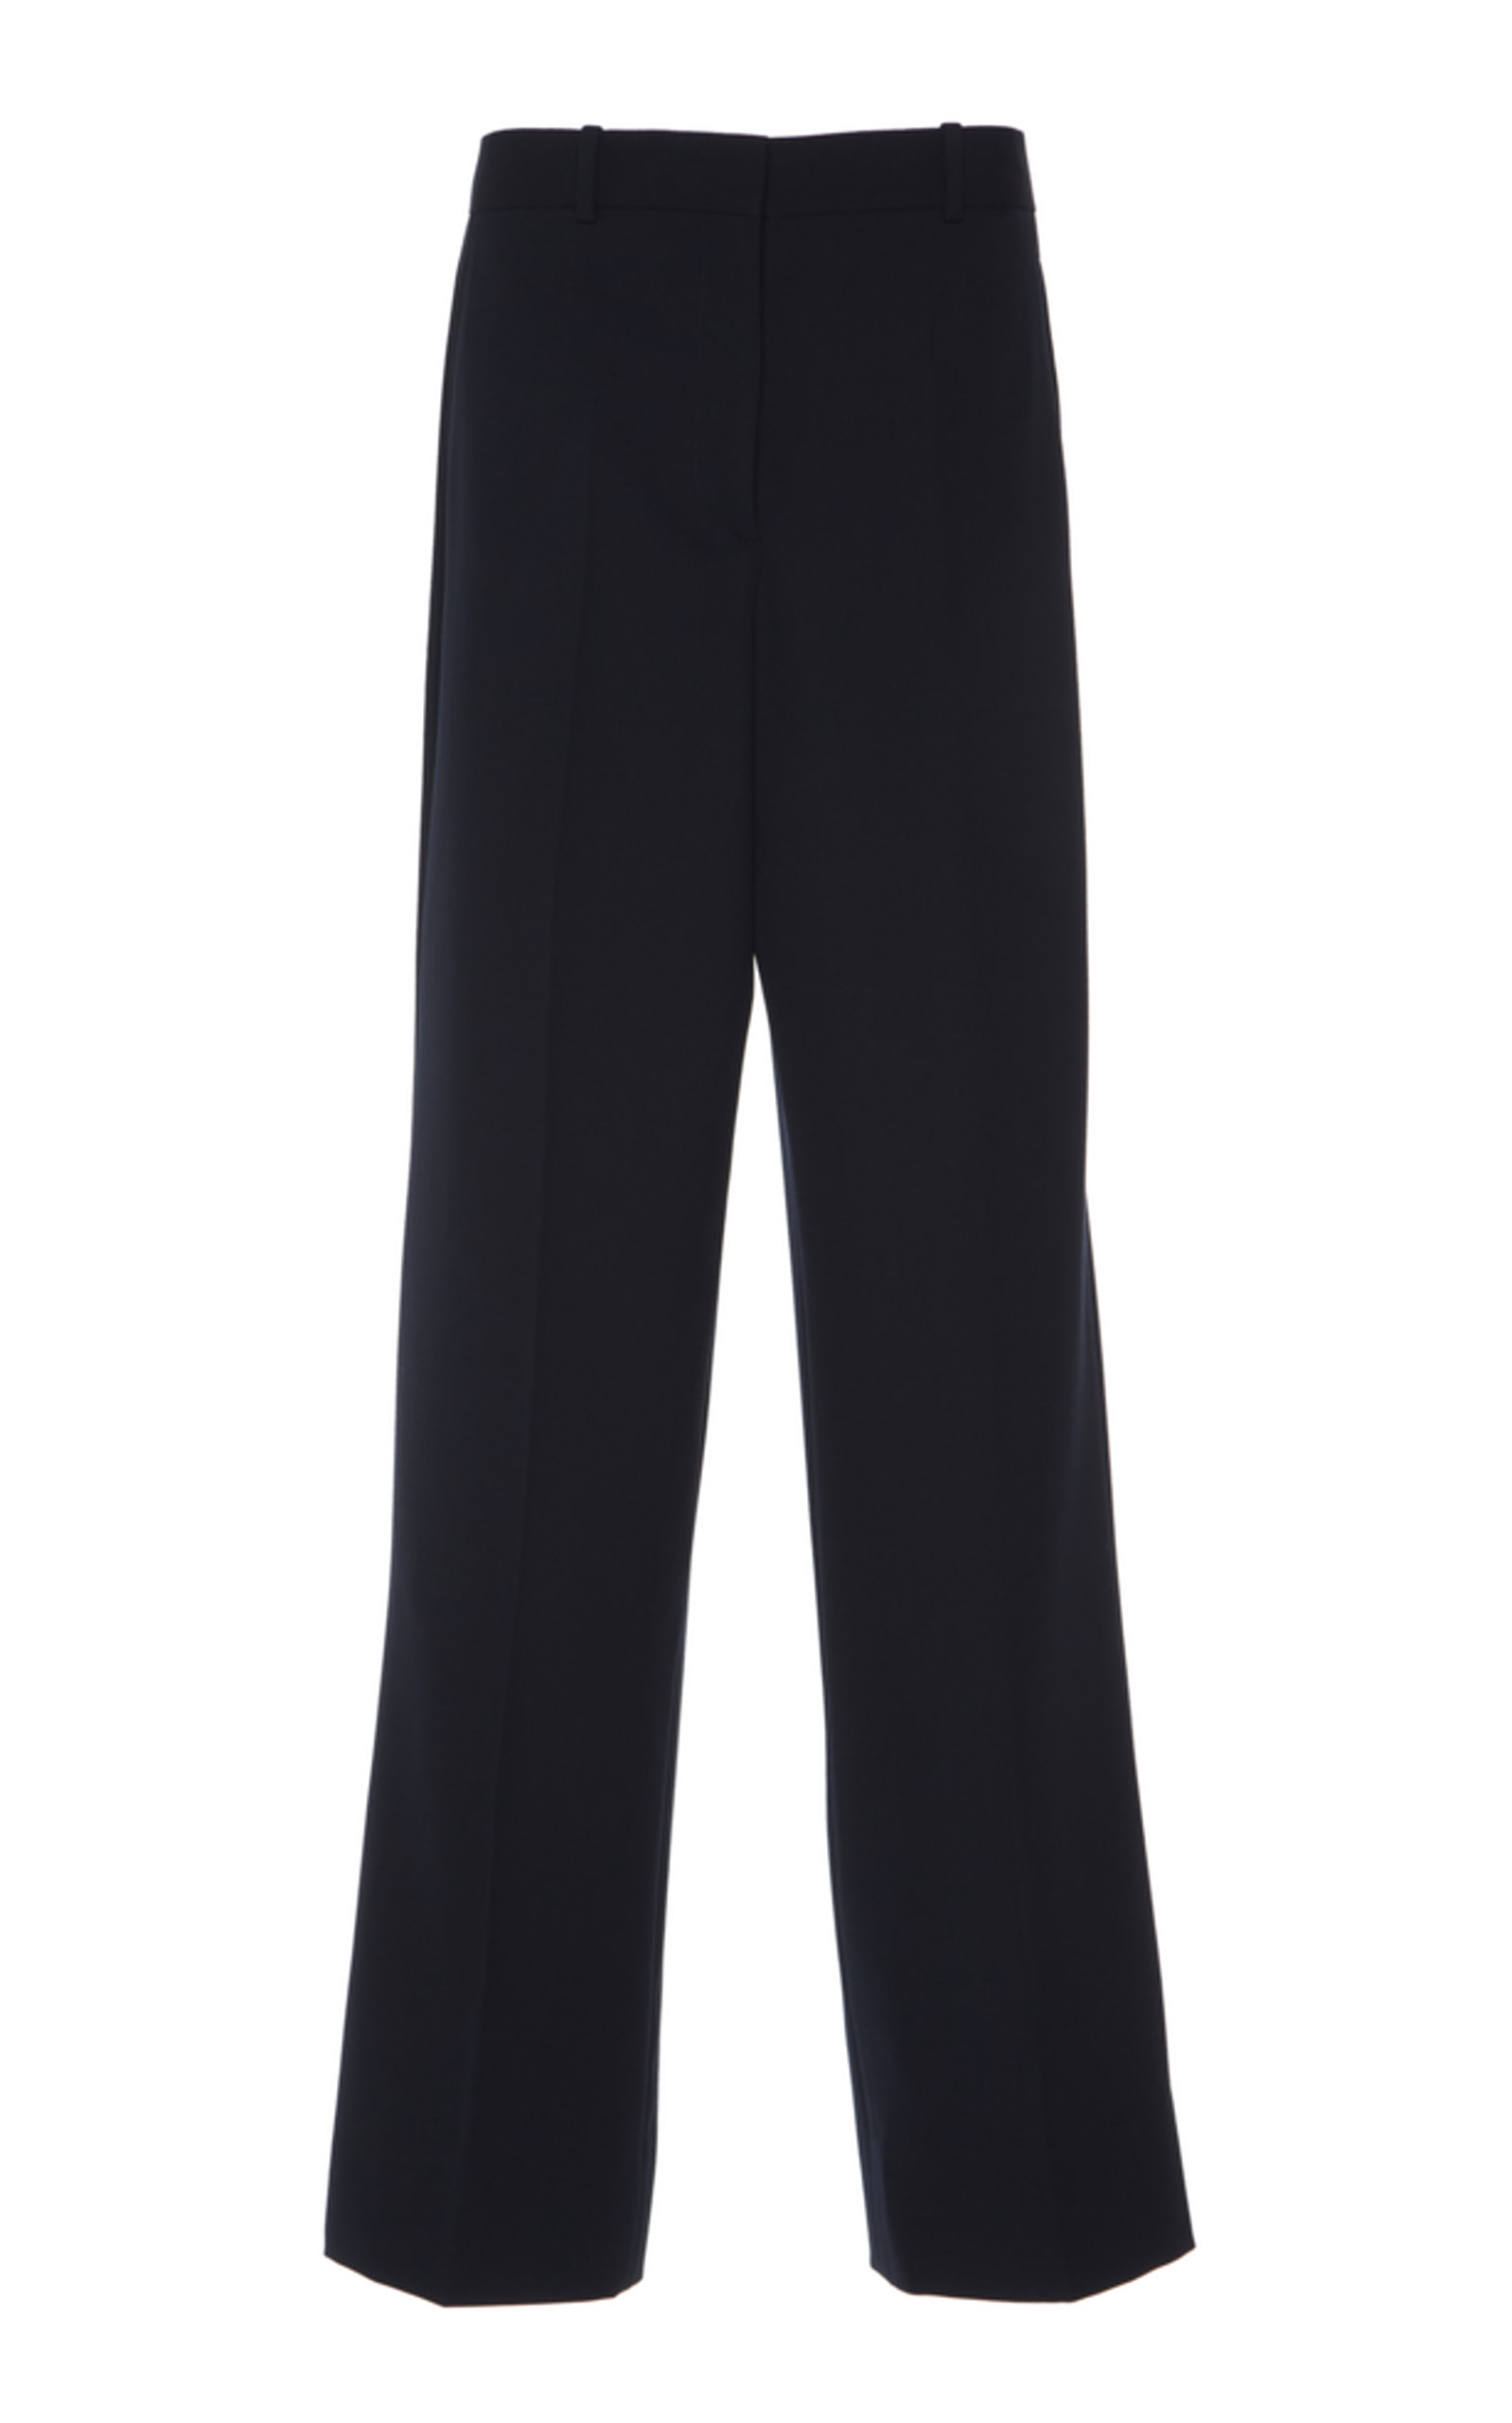 Online Cheap Online Grover Wool Pant Jil Sander Clearance Visit New Cheap View Outlet Store LIzvZ